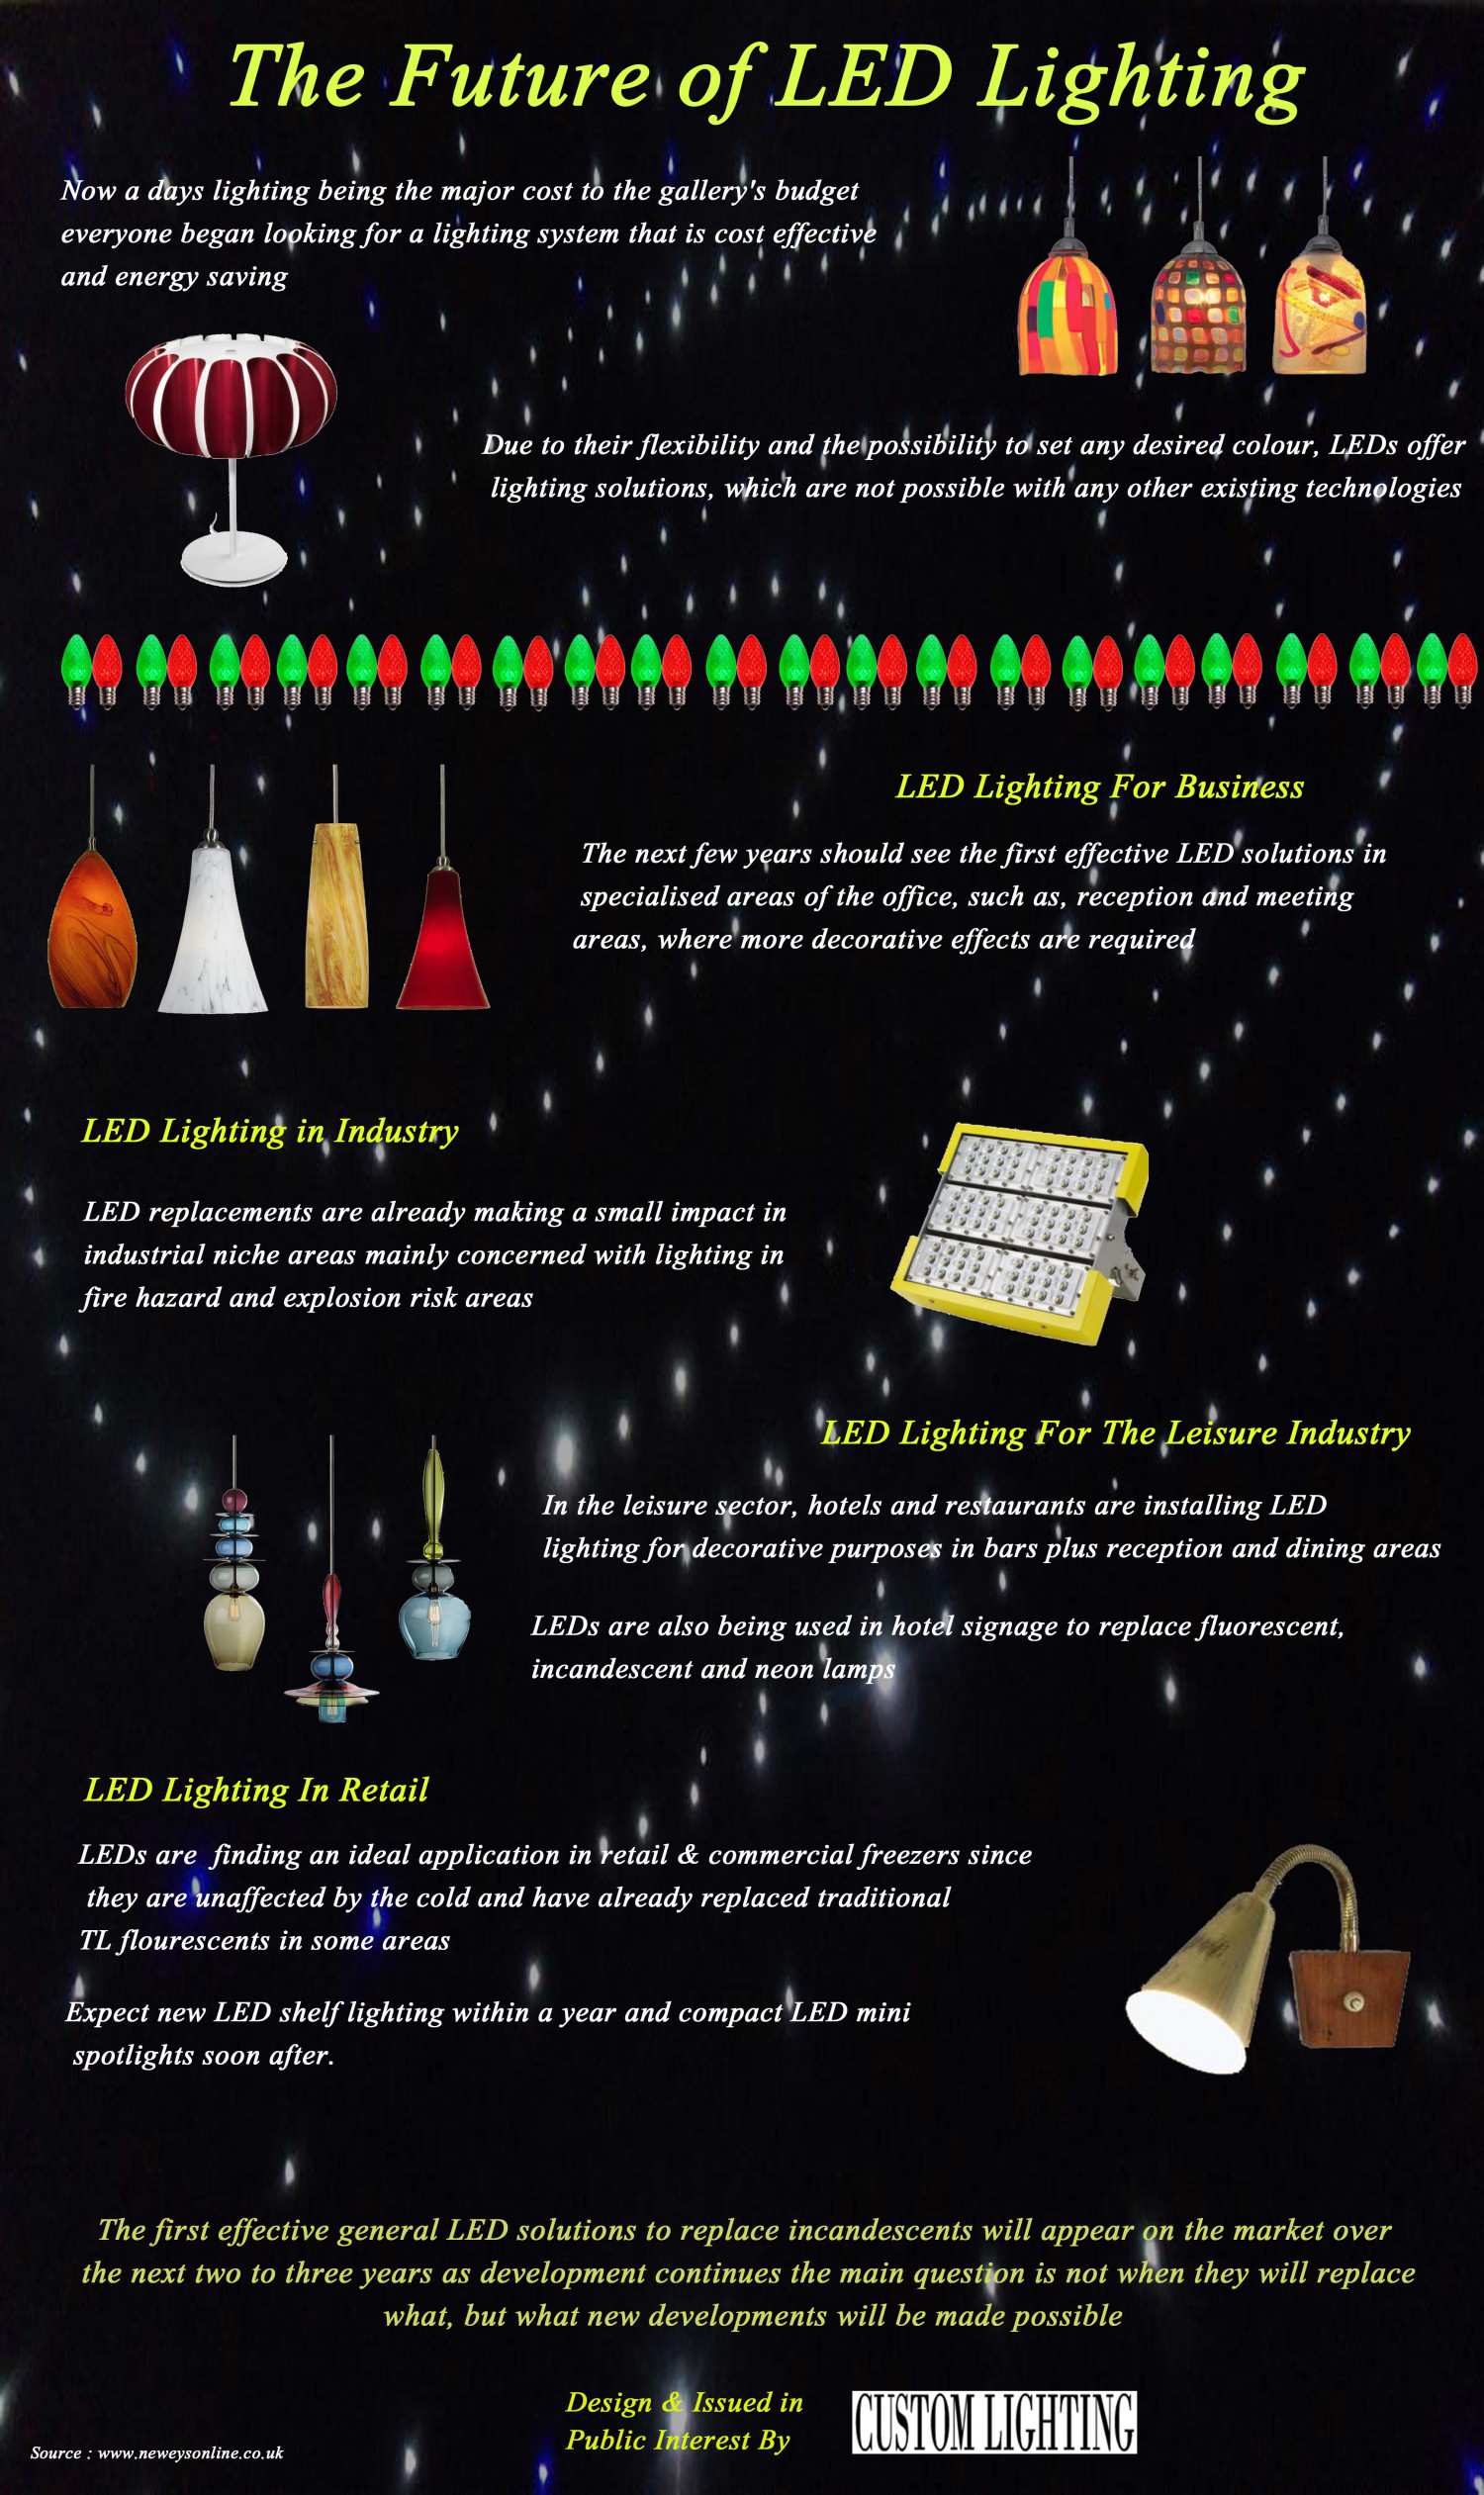 The future of LED Lighting Infographic